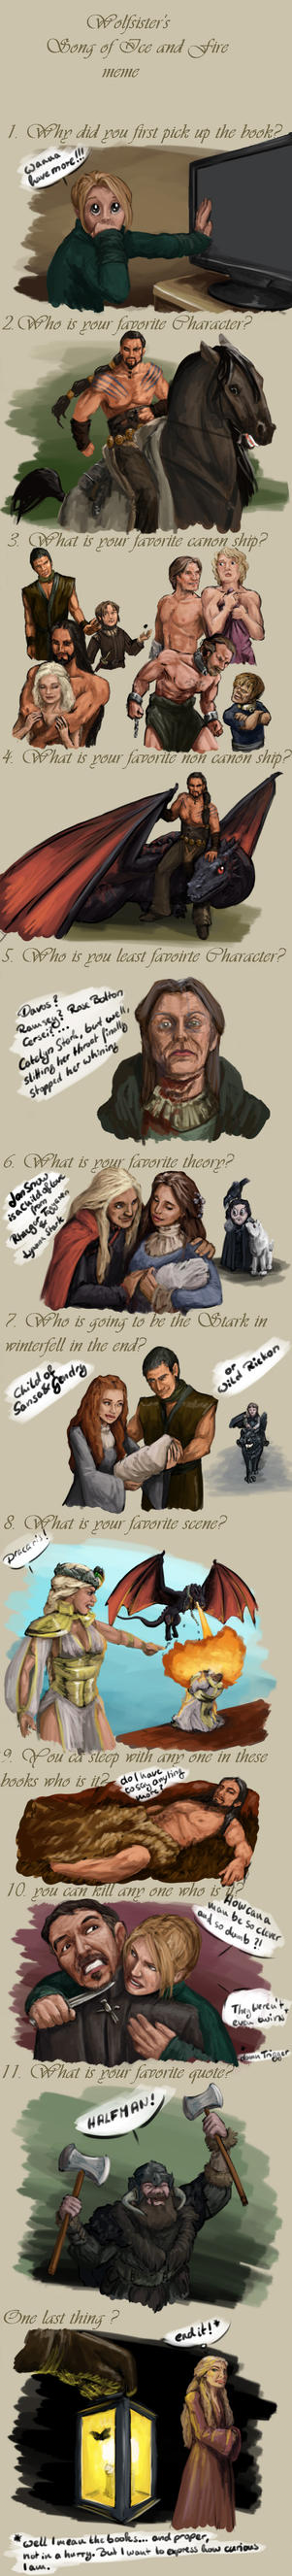 Song of Ice and Fire Meme by poisonmilow